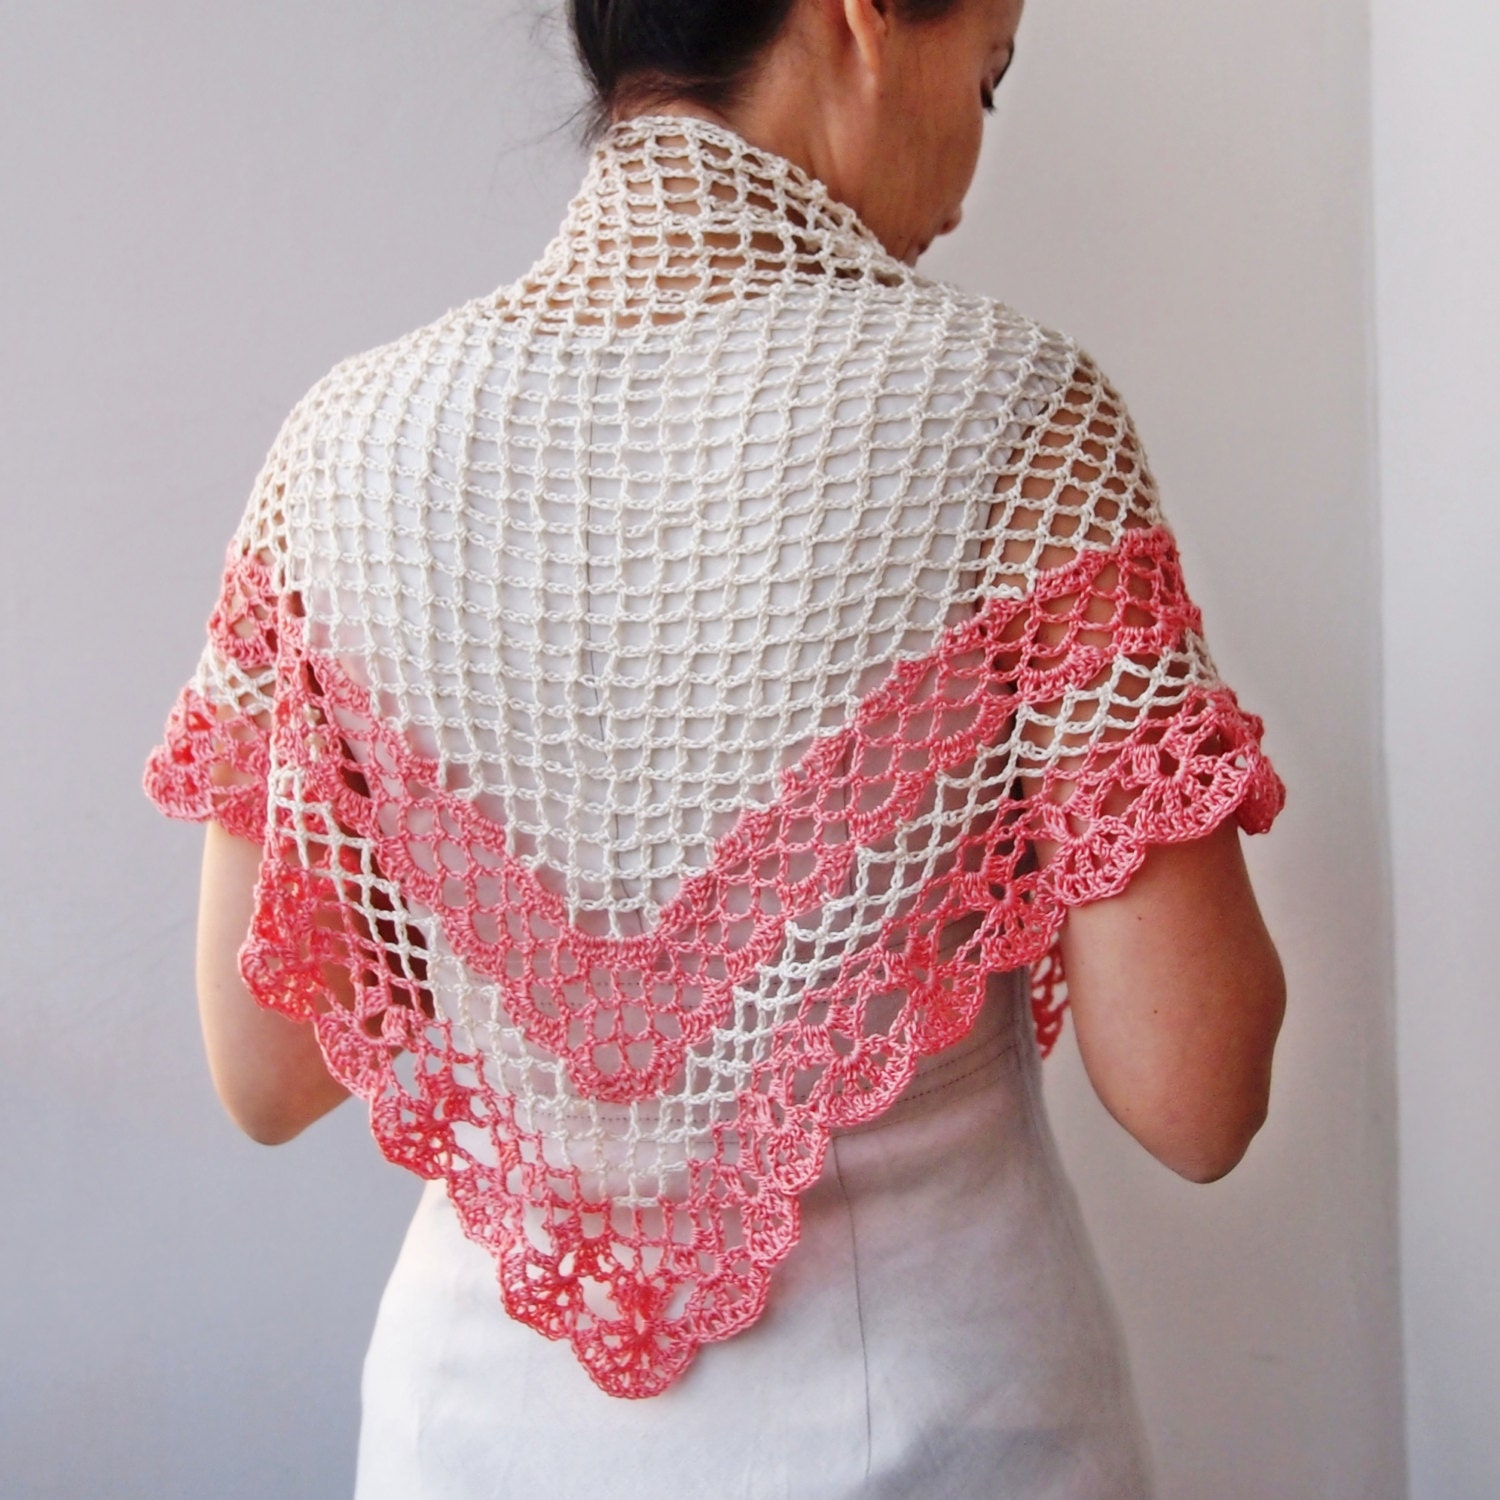 Simple Triangle Crochet Shawl Pattern : Crochet pattern shawl women triangle shawl crochet lace